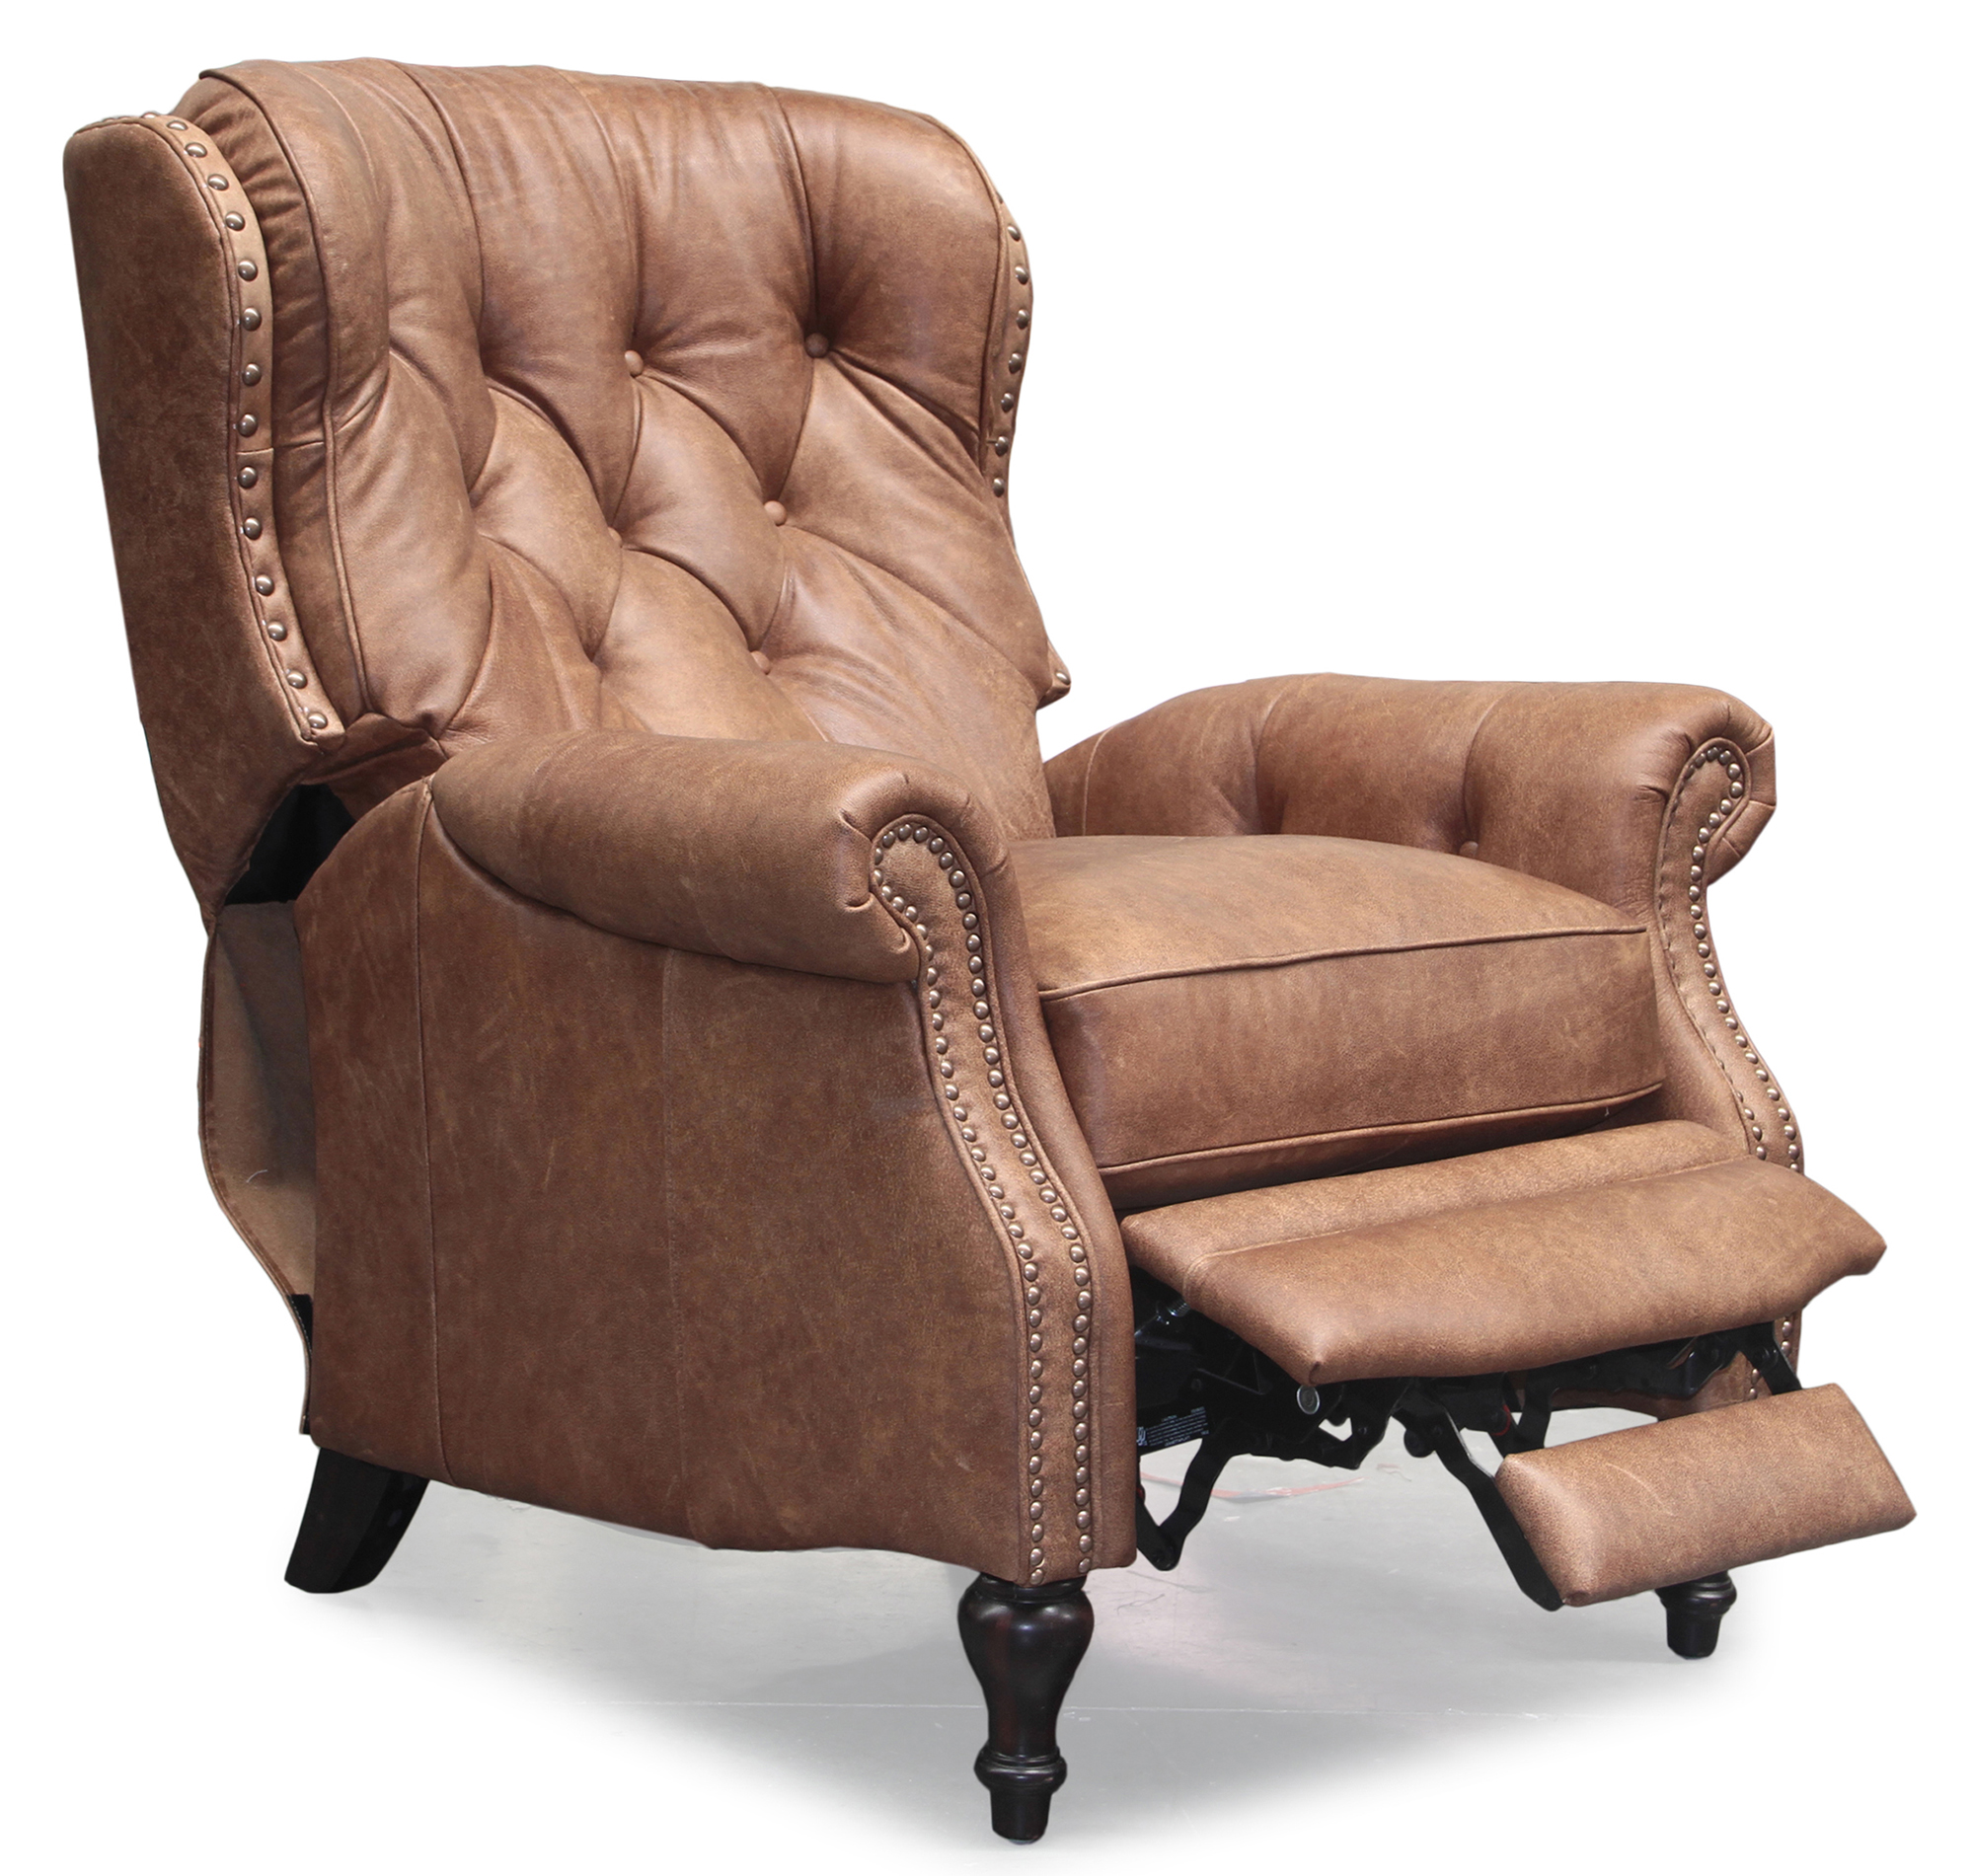 Barcalounger Kendall Ii Sanded Er Leather Recliner Chair